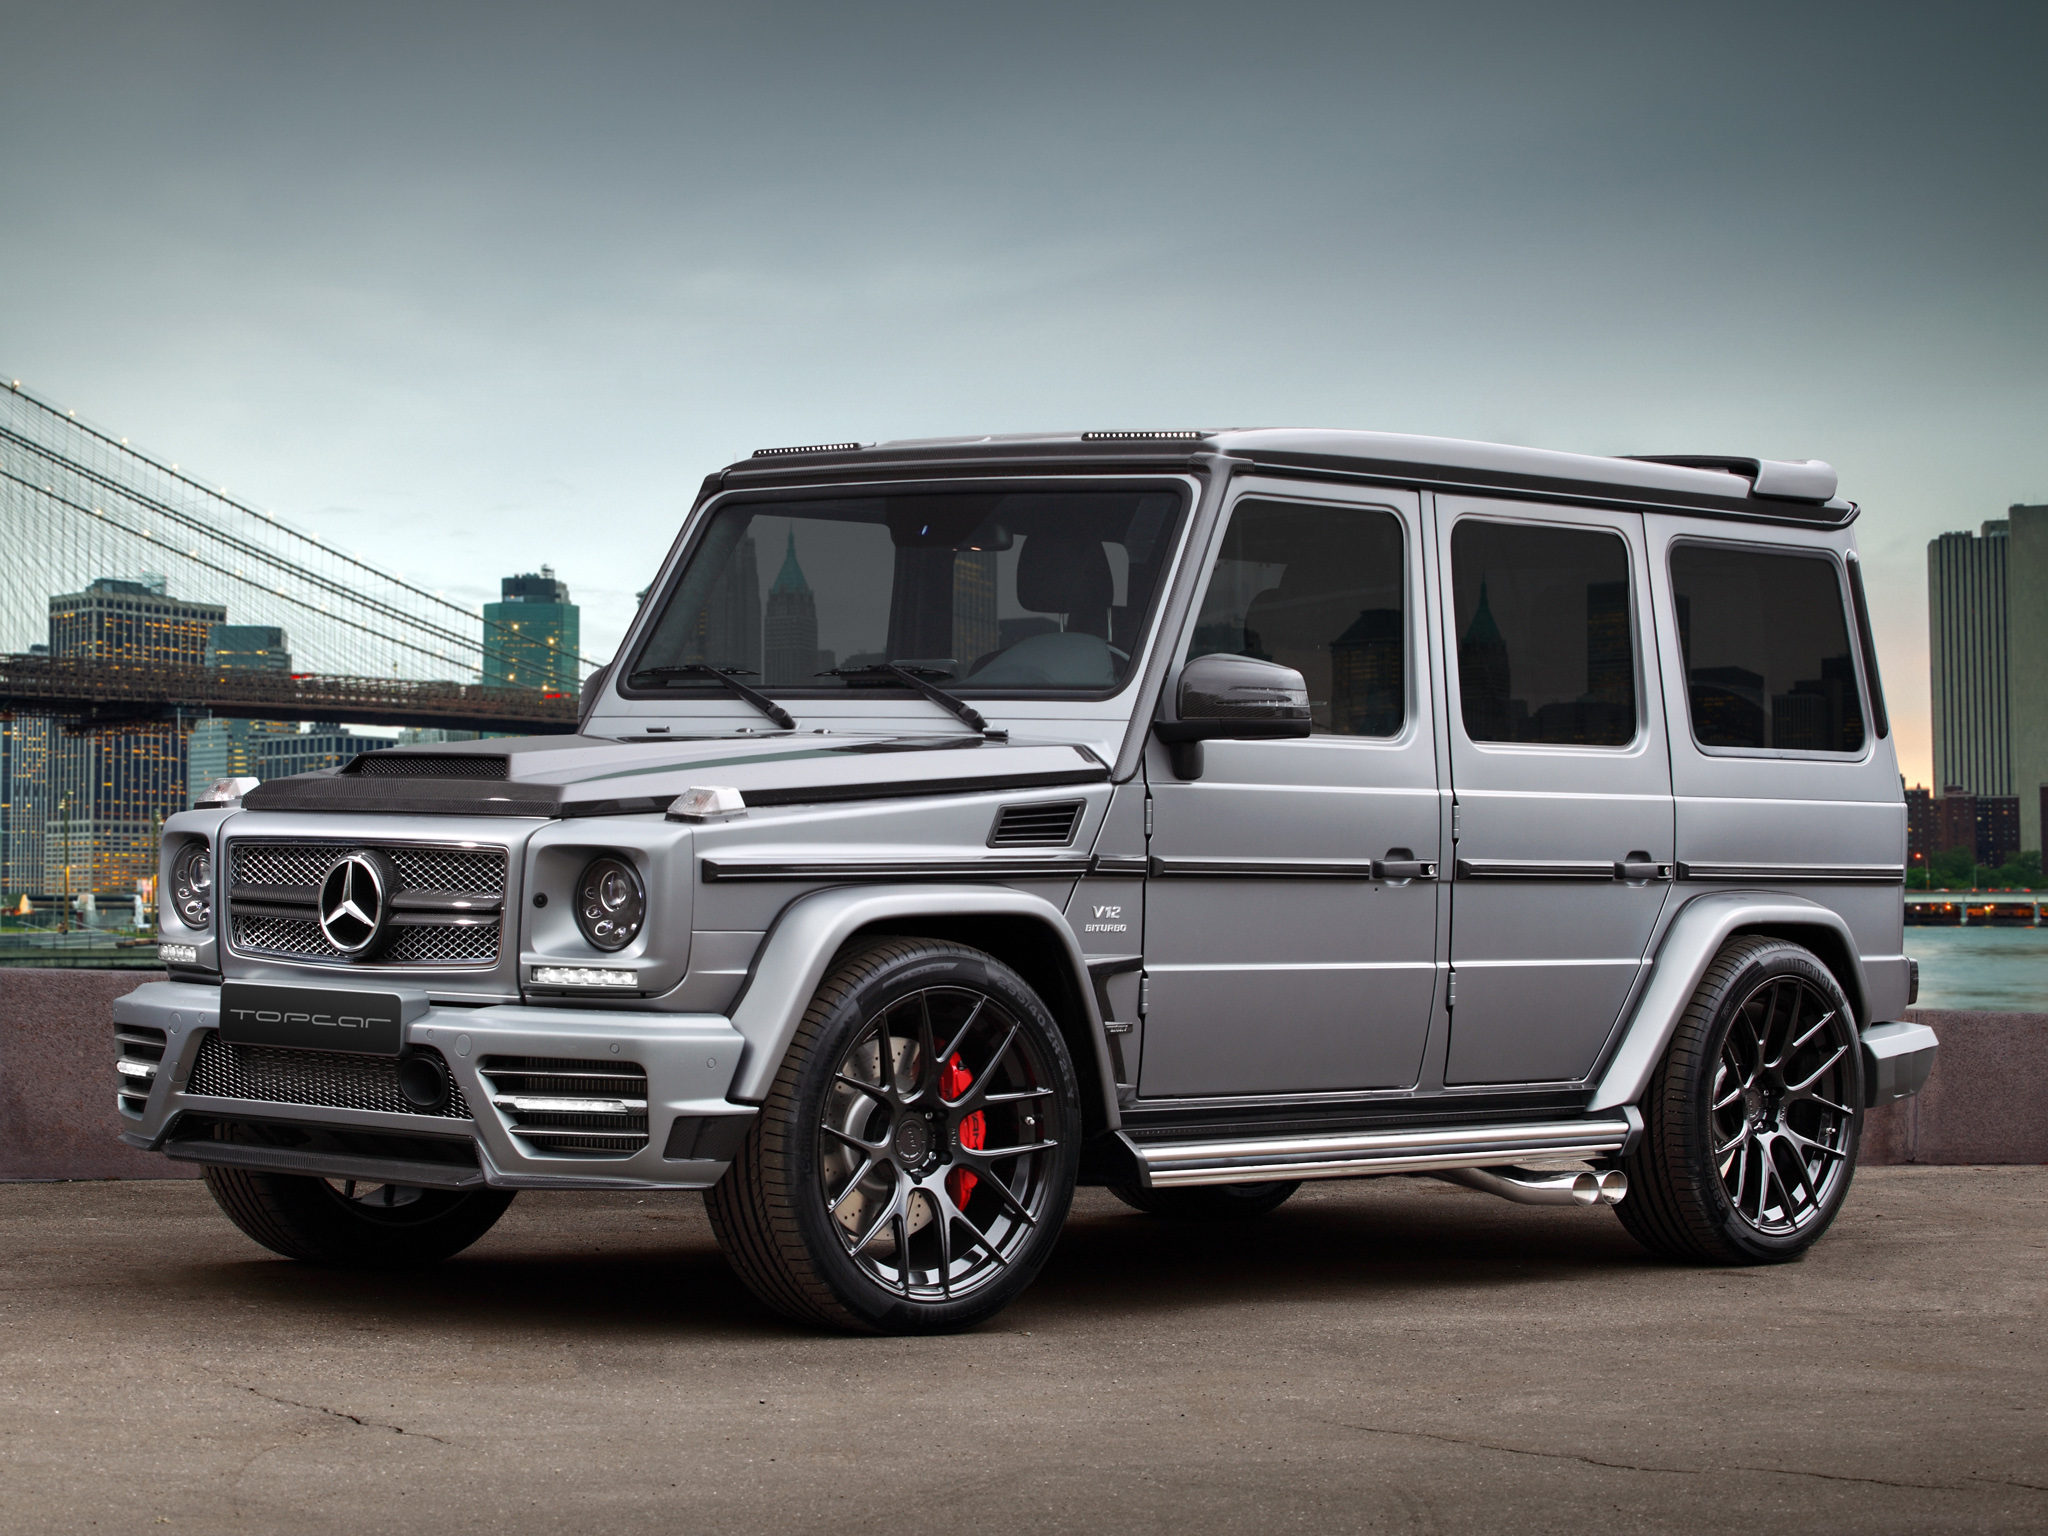 2013 mansory mercedes benz g65 amg w463 suv tuning j for Mercedes benz g65